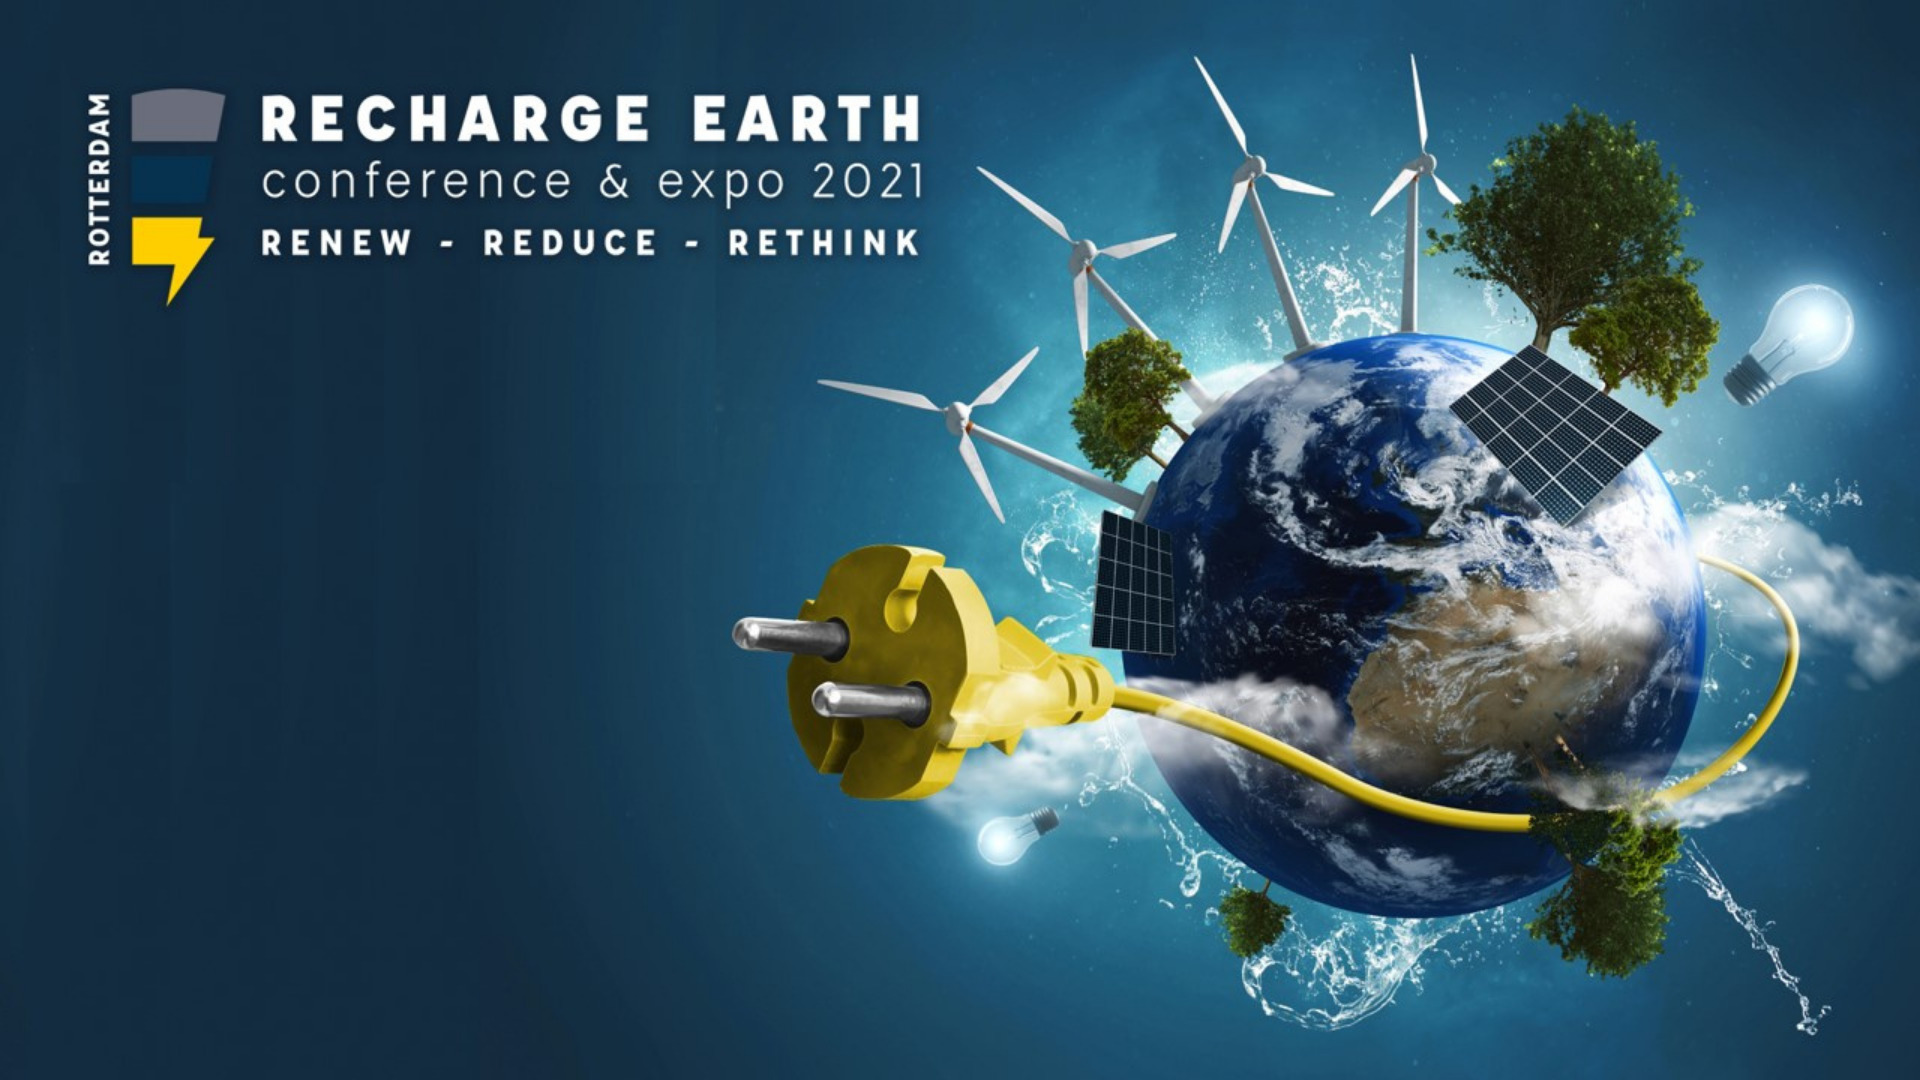 Recharge Earth